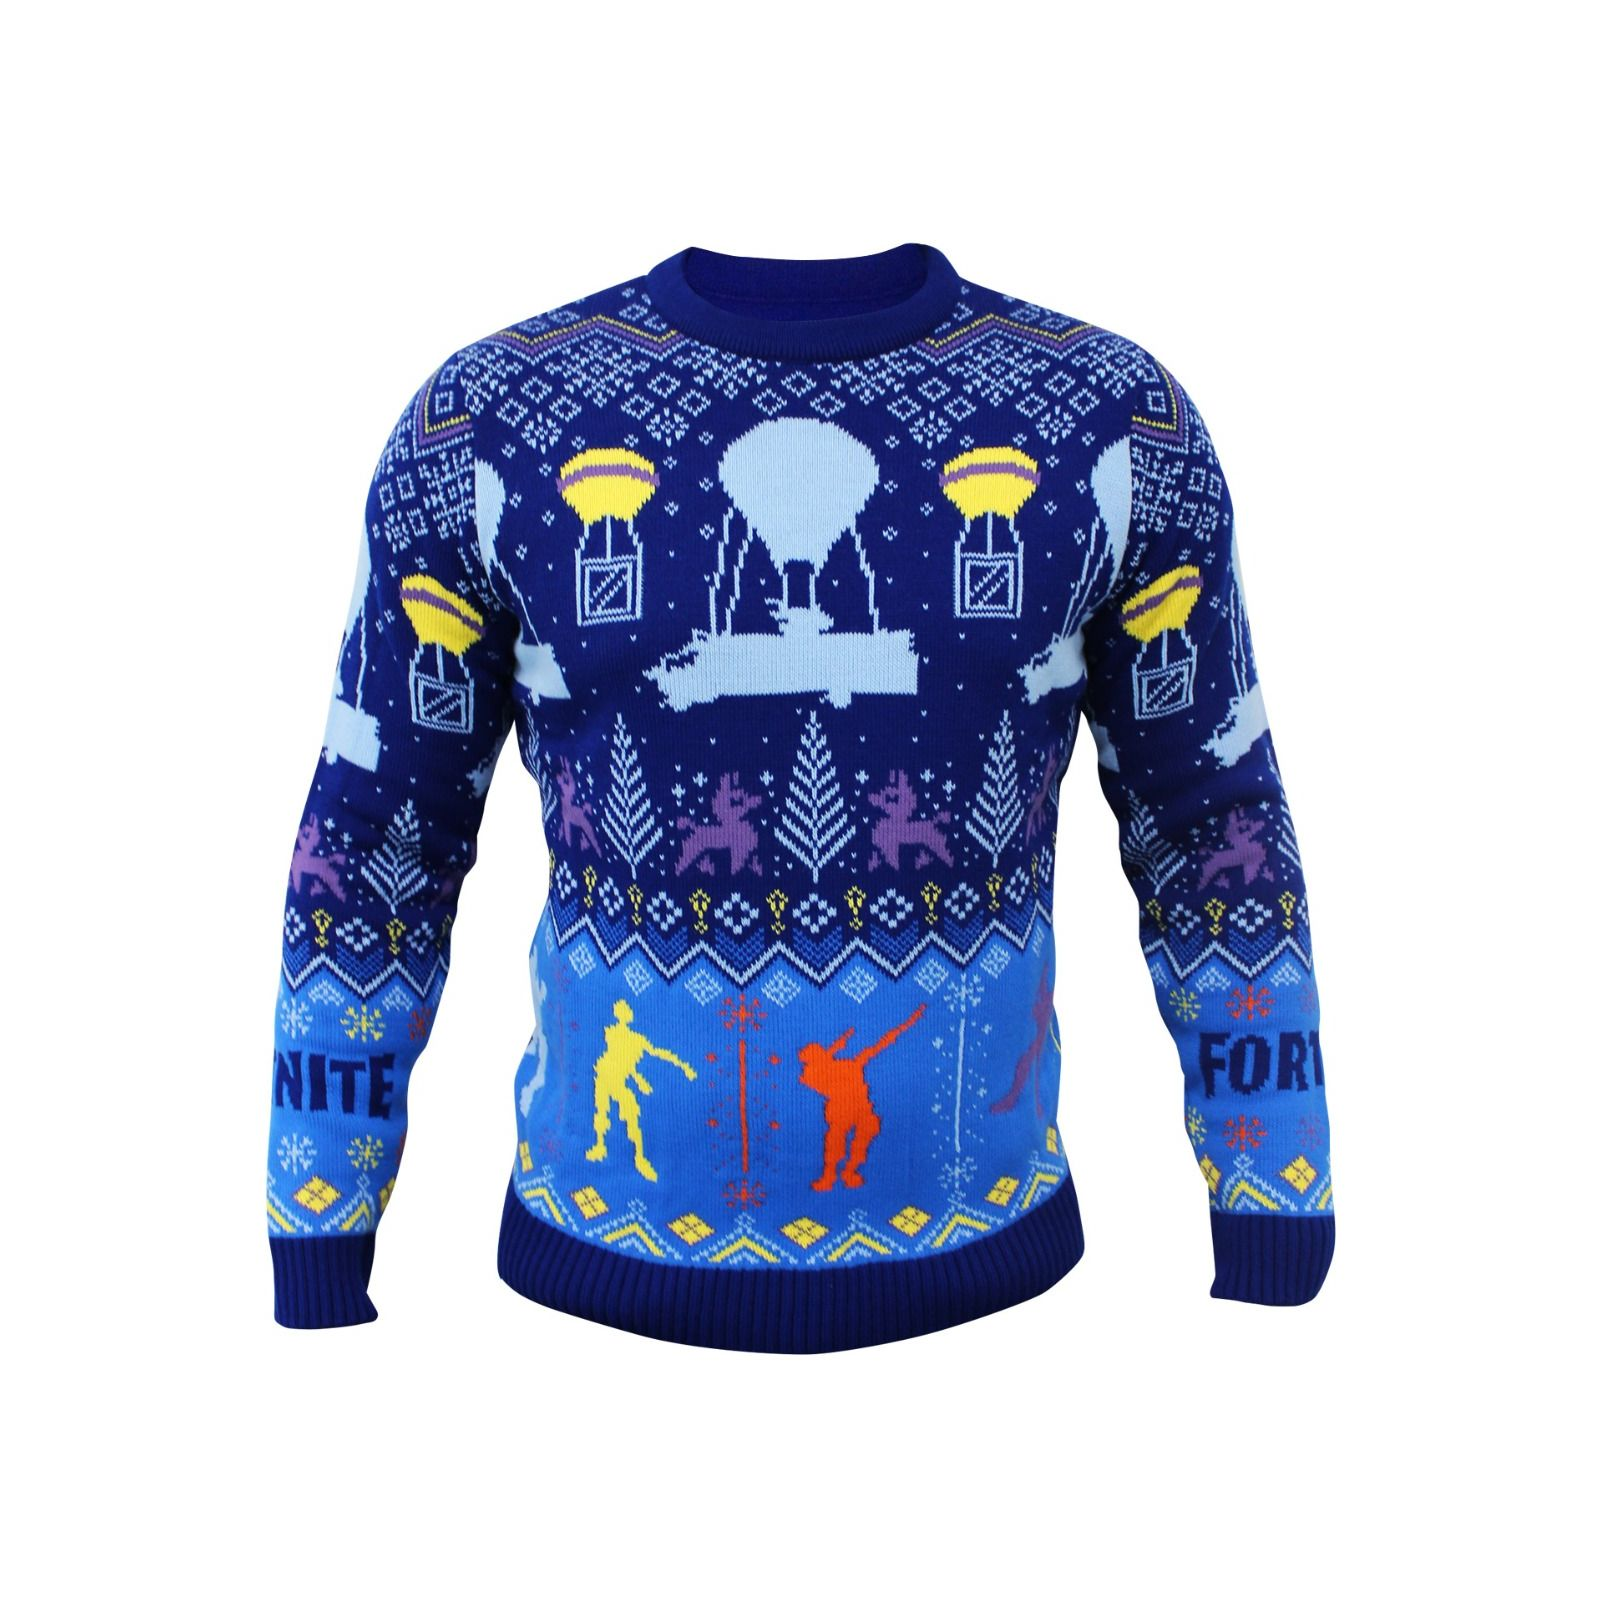 Details about NEW! Fortnite Official Christmas Xmas Jumper Sweater Kids  Small